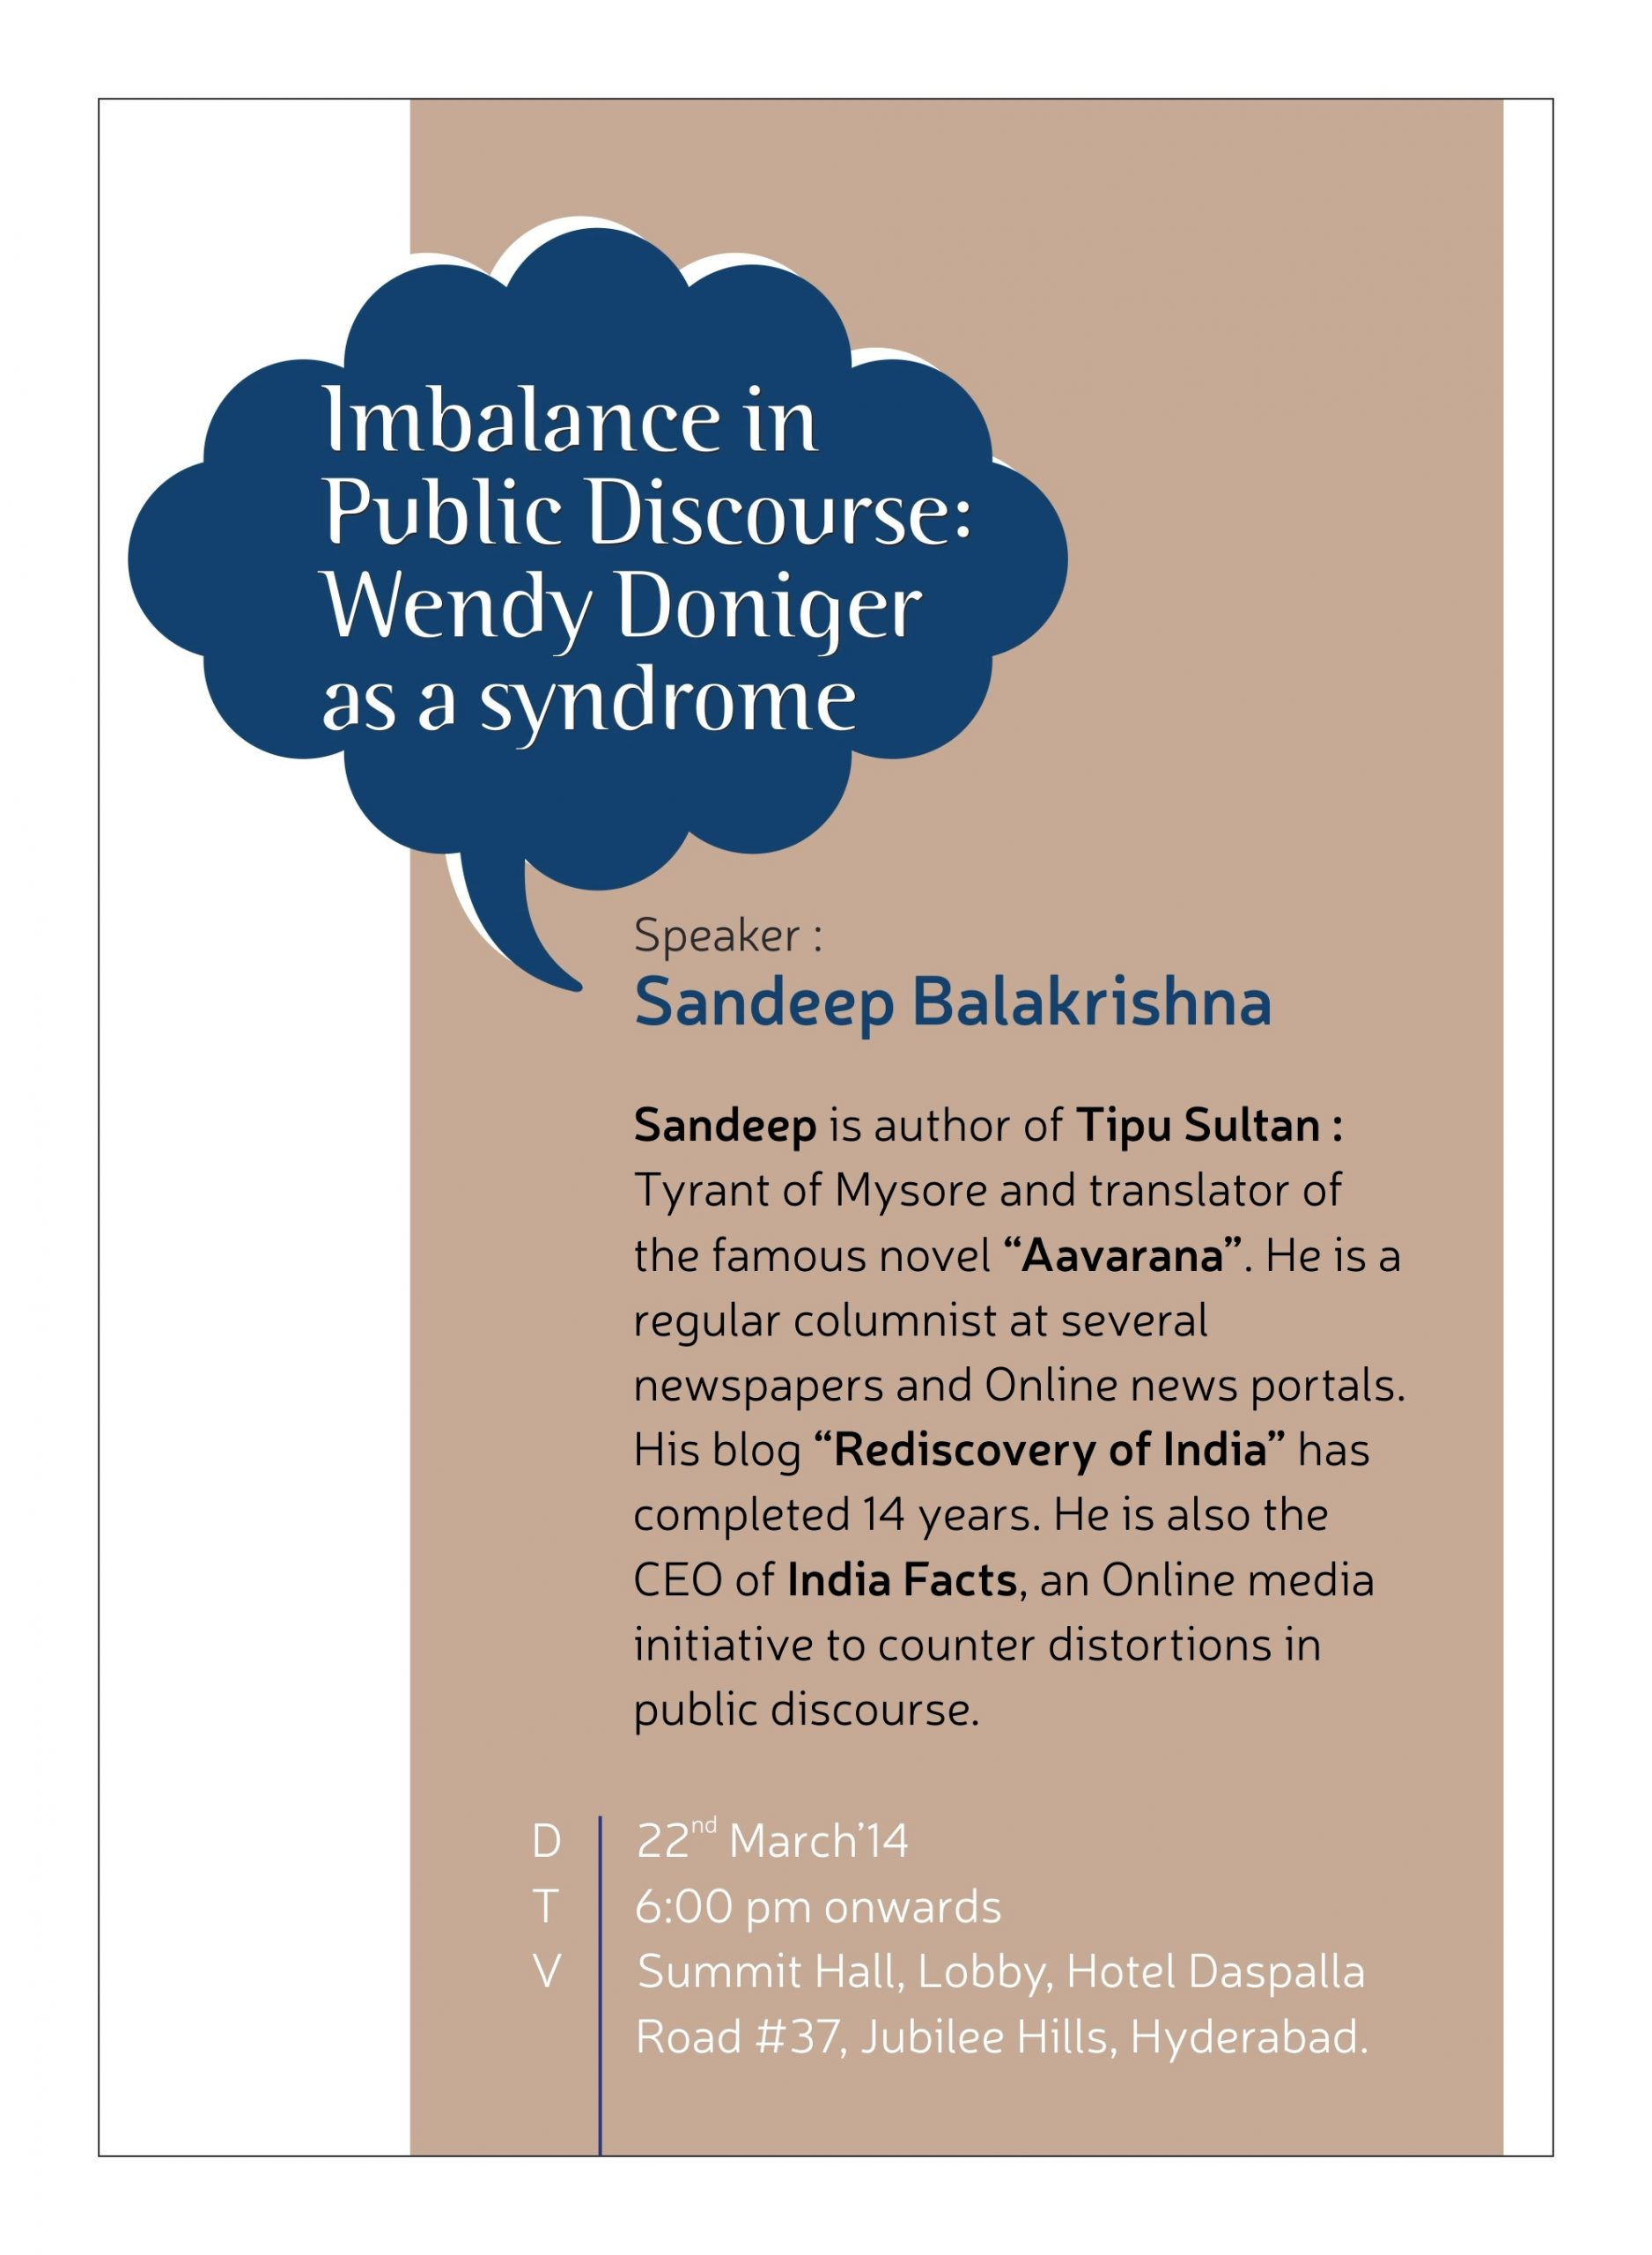 Seminar: Imbalance in Public Discourse